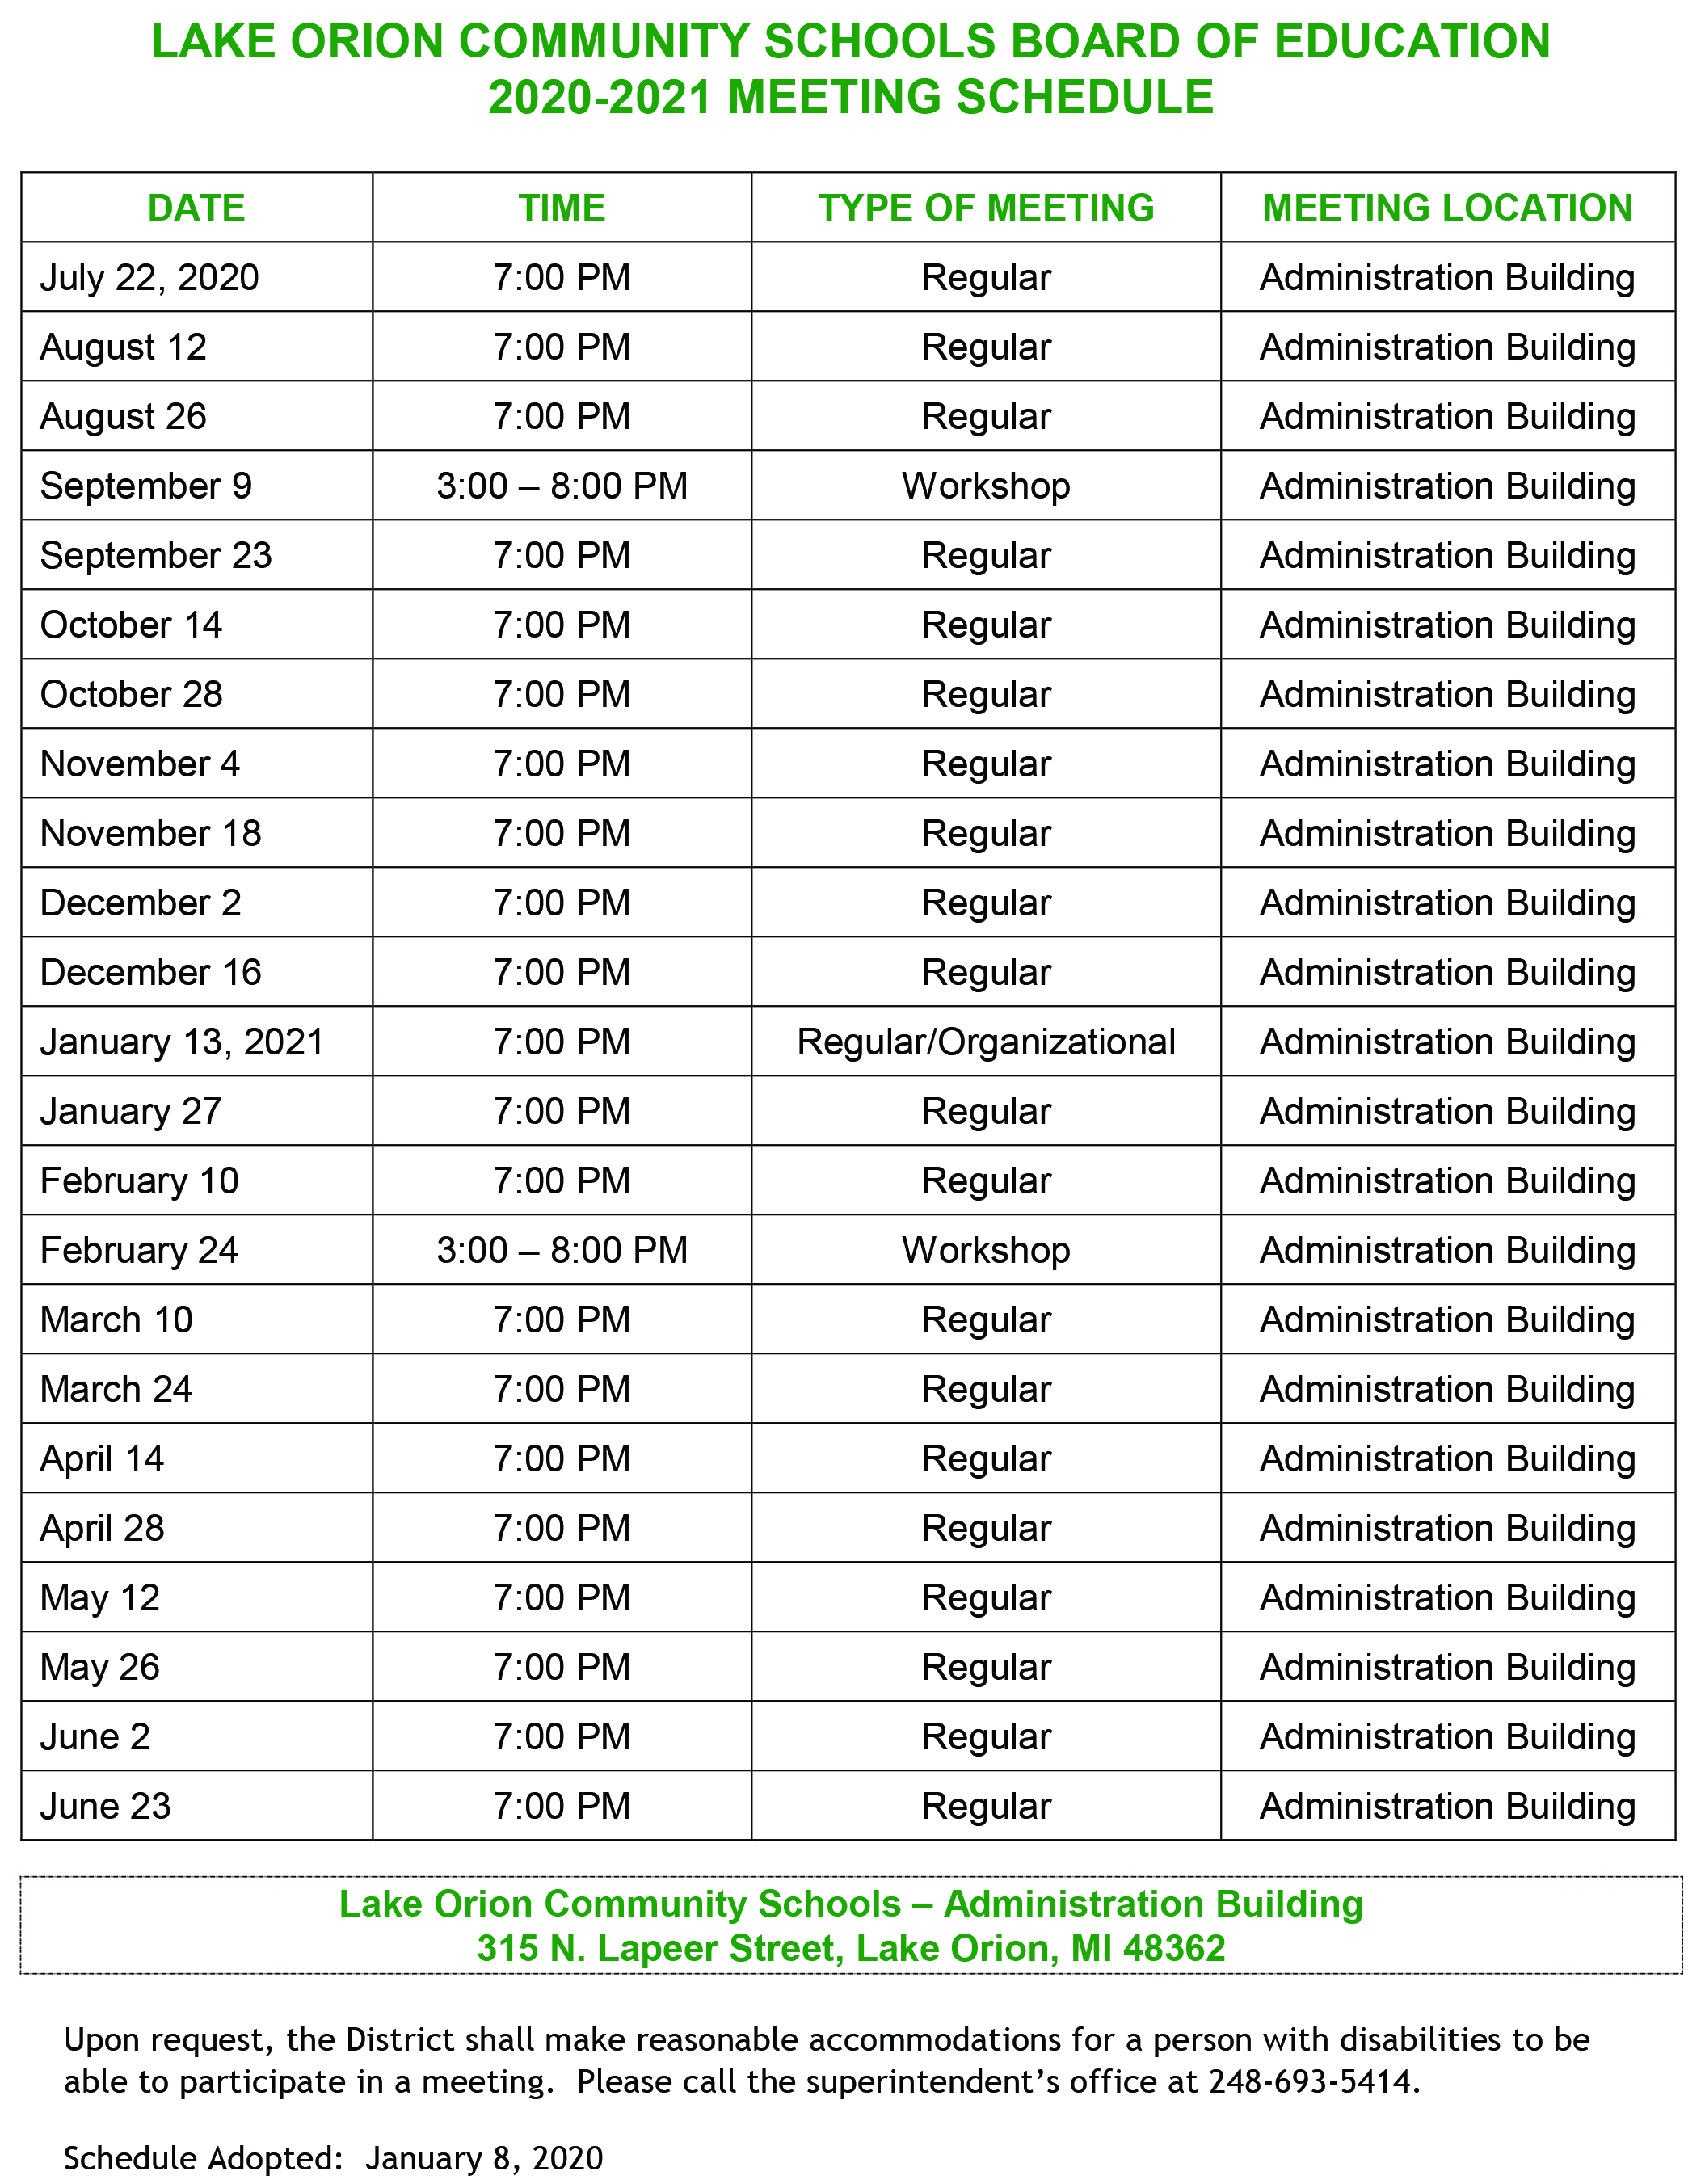 Board of Education Meeting schedule